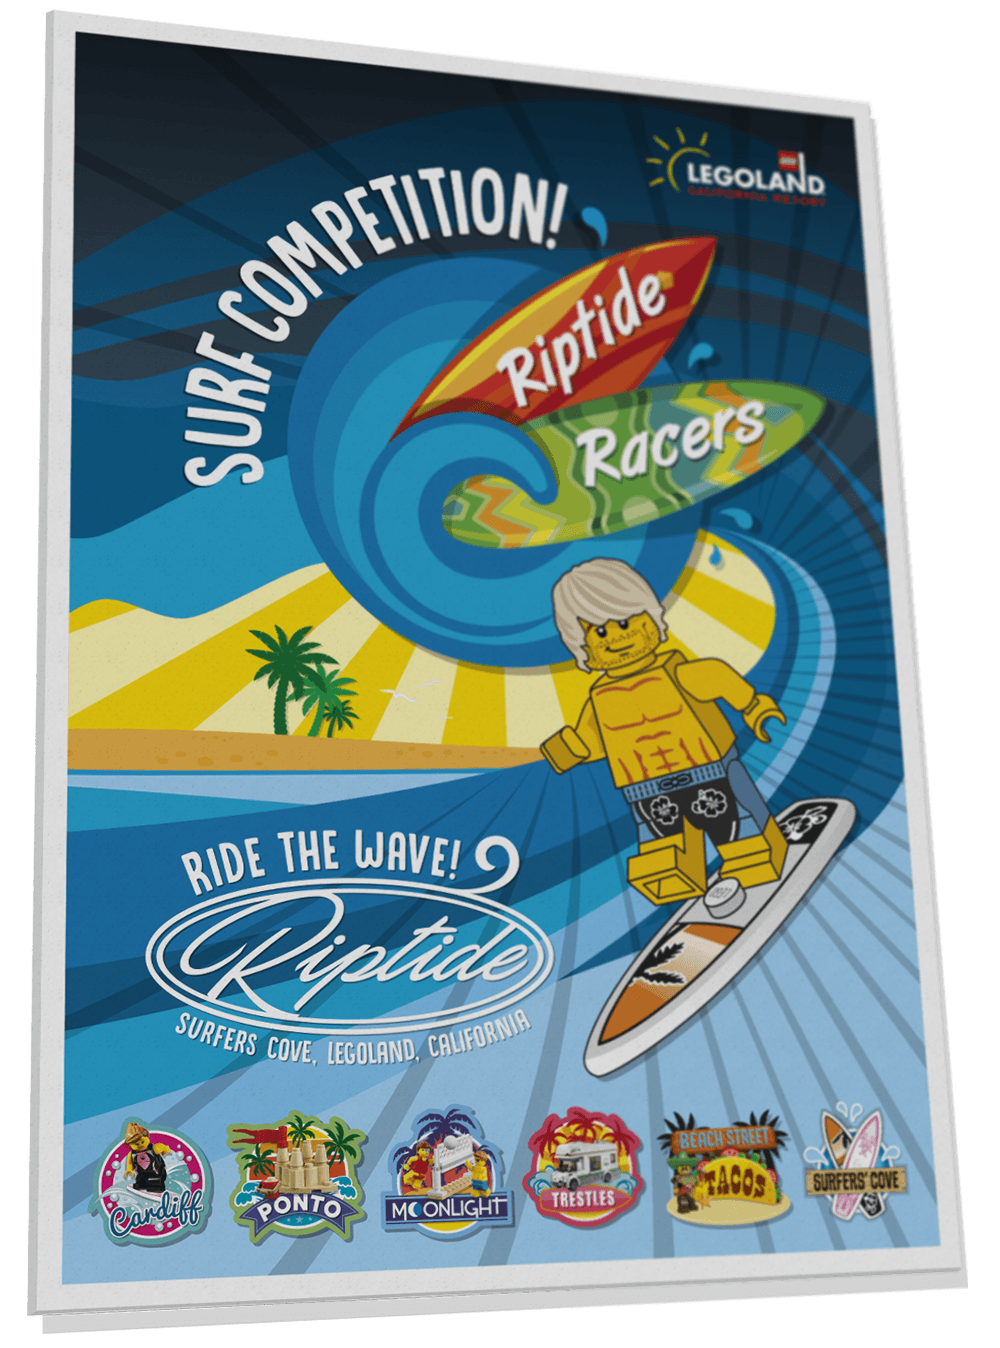 Riptide Racers surfing competition poster